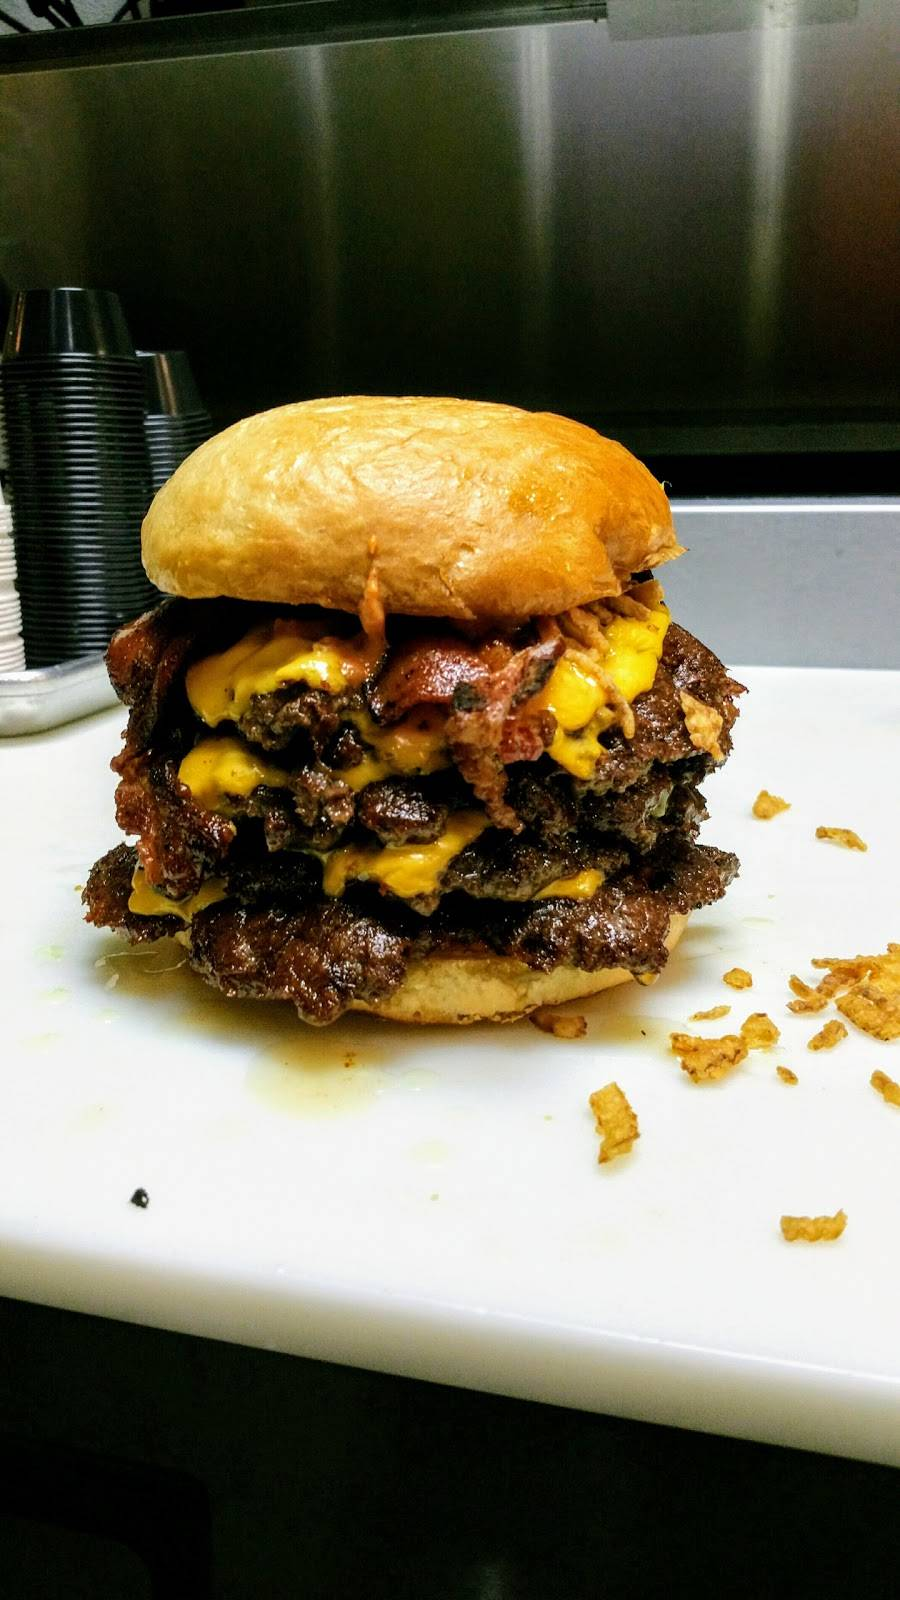 The Sear Shack Burgers and Fries   restaurant   875 W Poplar Ave Suite 6, Collierville, TN 38017, USA   9018614100 OR +1 901-861-4100